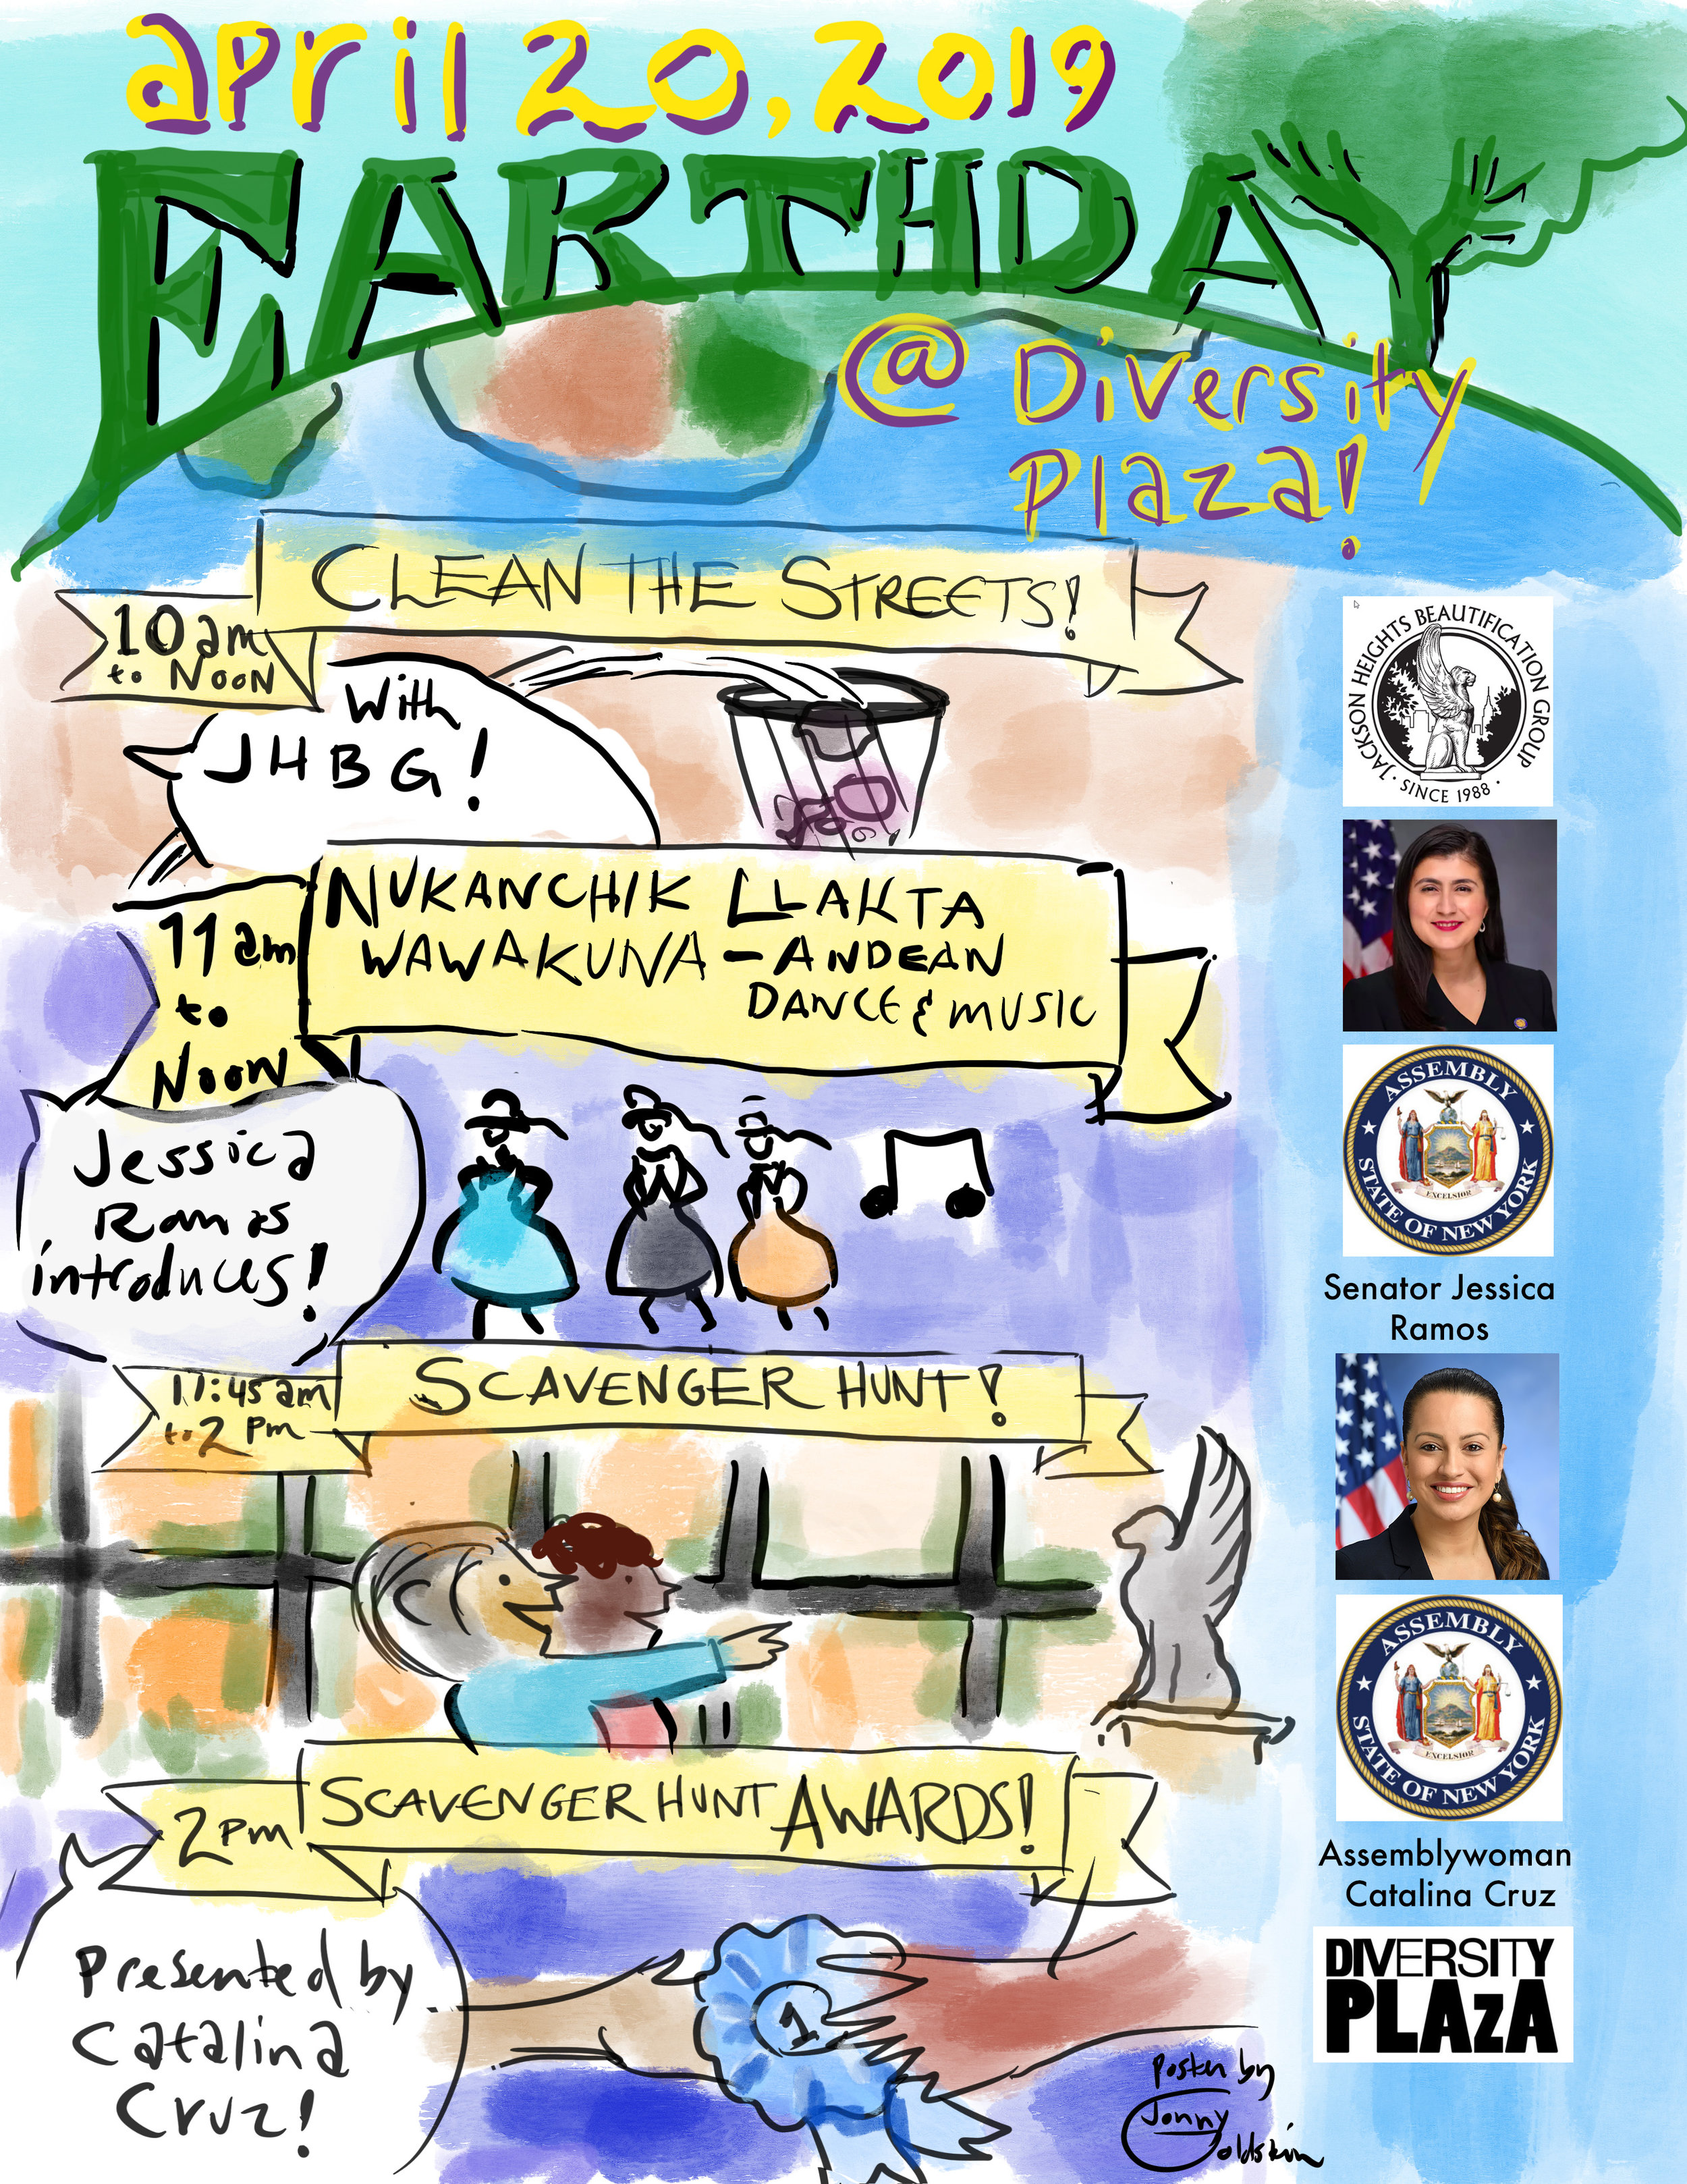 Poster created for Earth Day celebration in Jackson Heights, Queens. Medium and tools: digital painting and illustration using a painting app on an iPad digital painting and illustration using a painting app on an iPad. Type, photos, and government seals added with Photoshop.